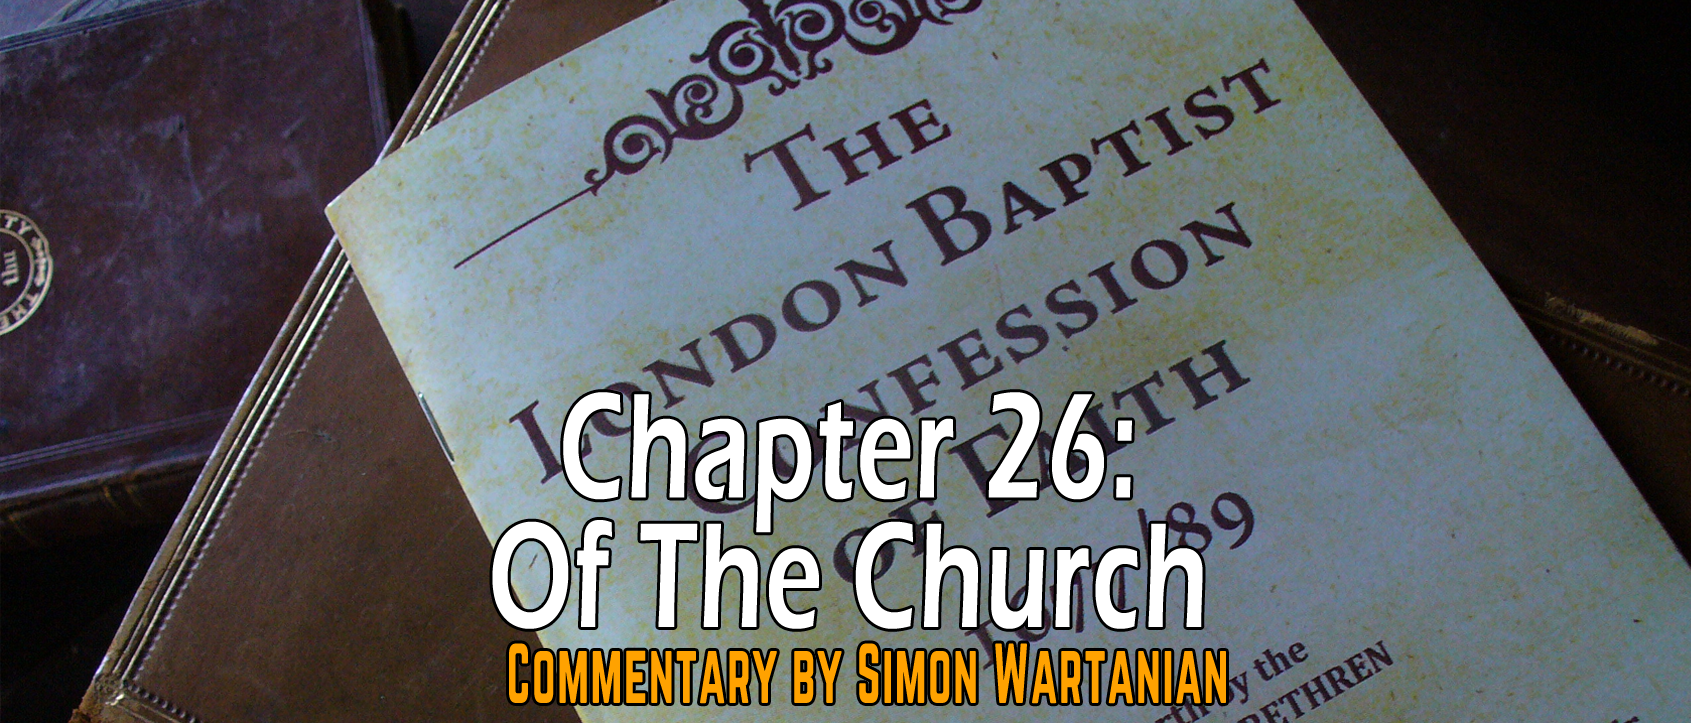 1689 Baptist Confession Chapter 26: Of the Church - Commentary